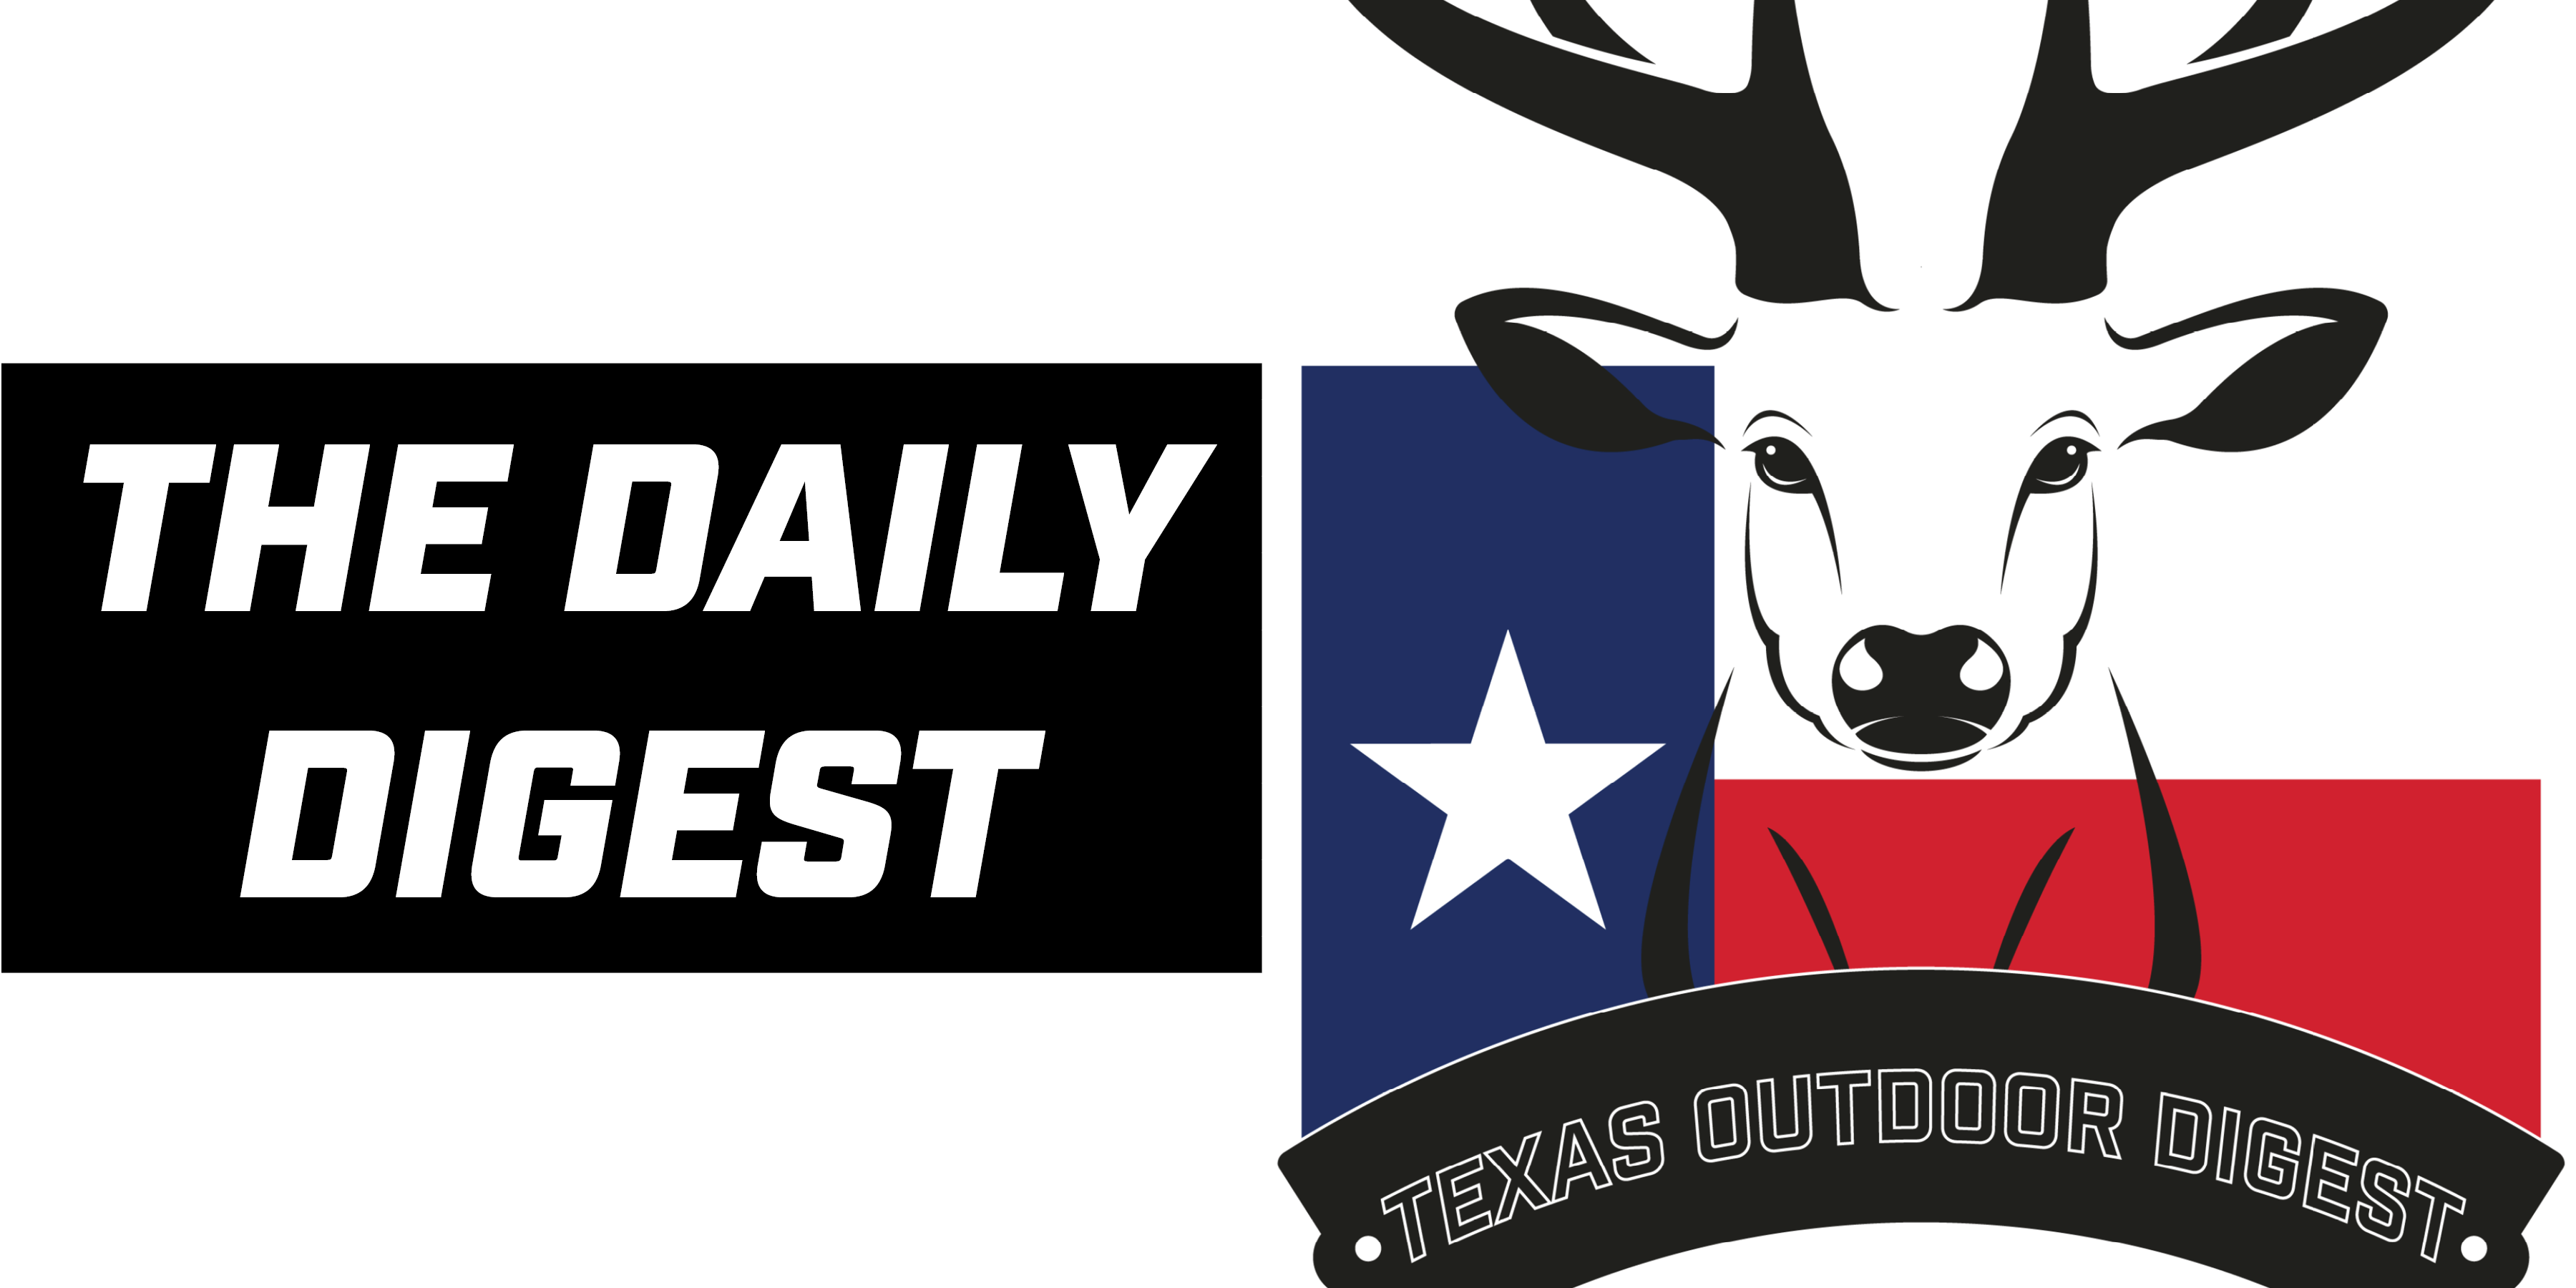 The Daily Texas Outdoor Digest: Friday, August 23, 2019